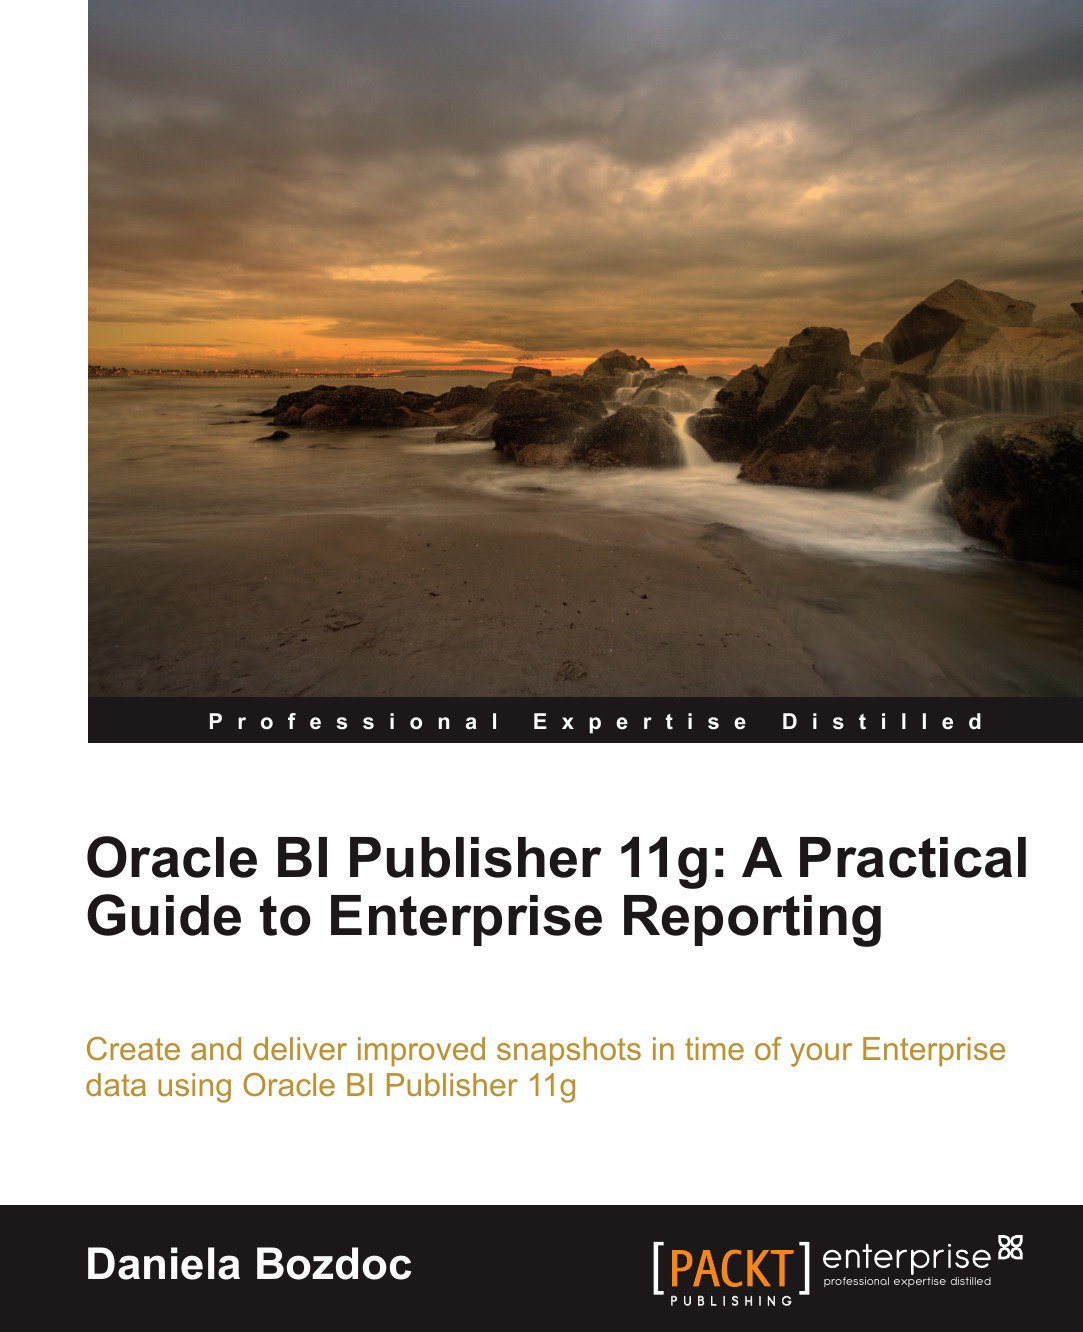 Daniela Bozdoc Oracle Bi Publisher 11g. A Practical Guide to Enterprise Reporting bradley preber j financial expert witness communication a practical guide to reporting and testimony